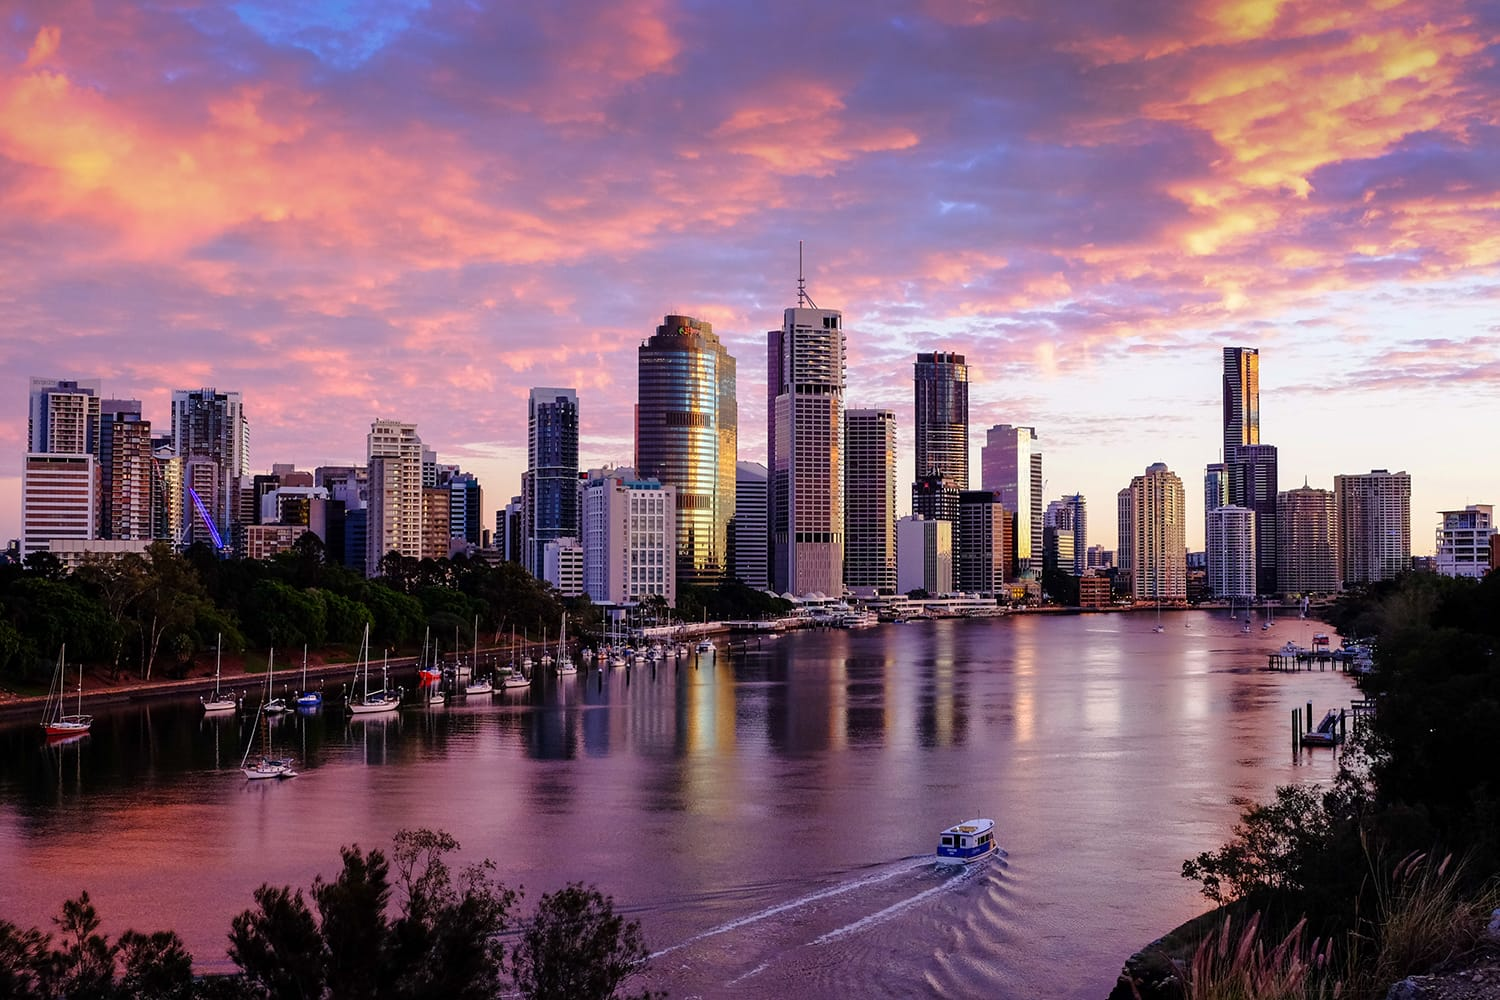 Sunset view of Brisbane City from Kangaroo Point cliffs